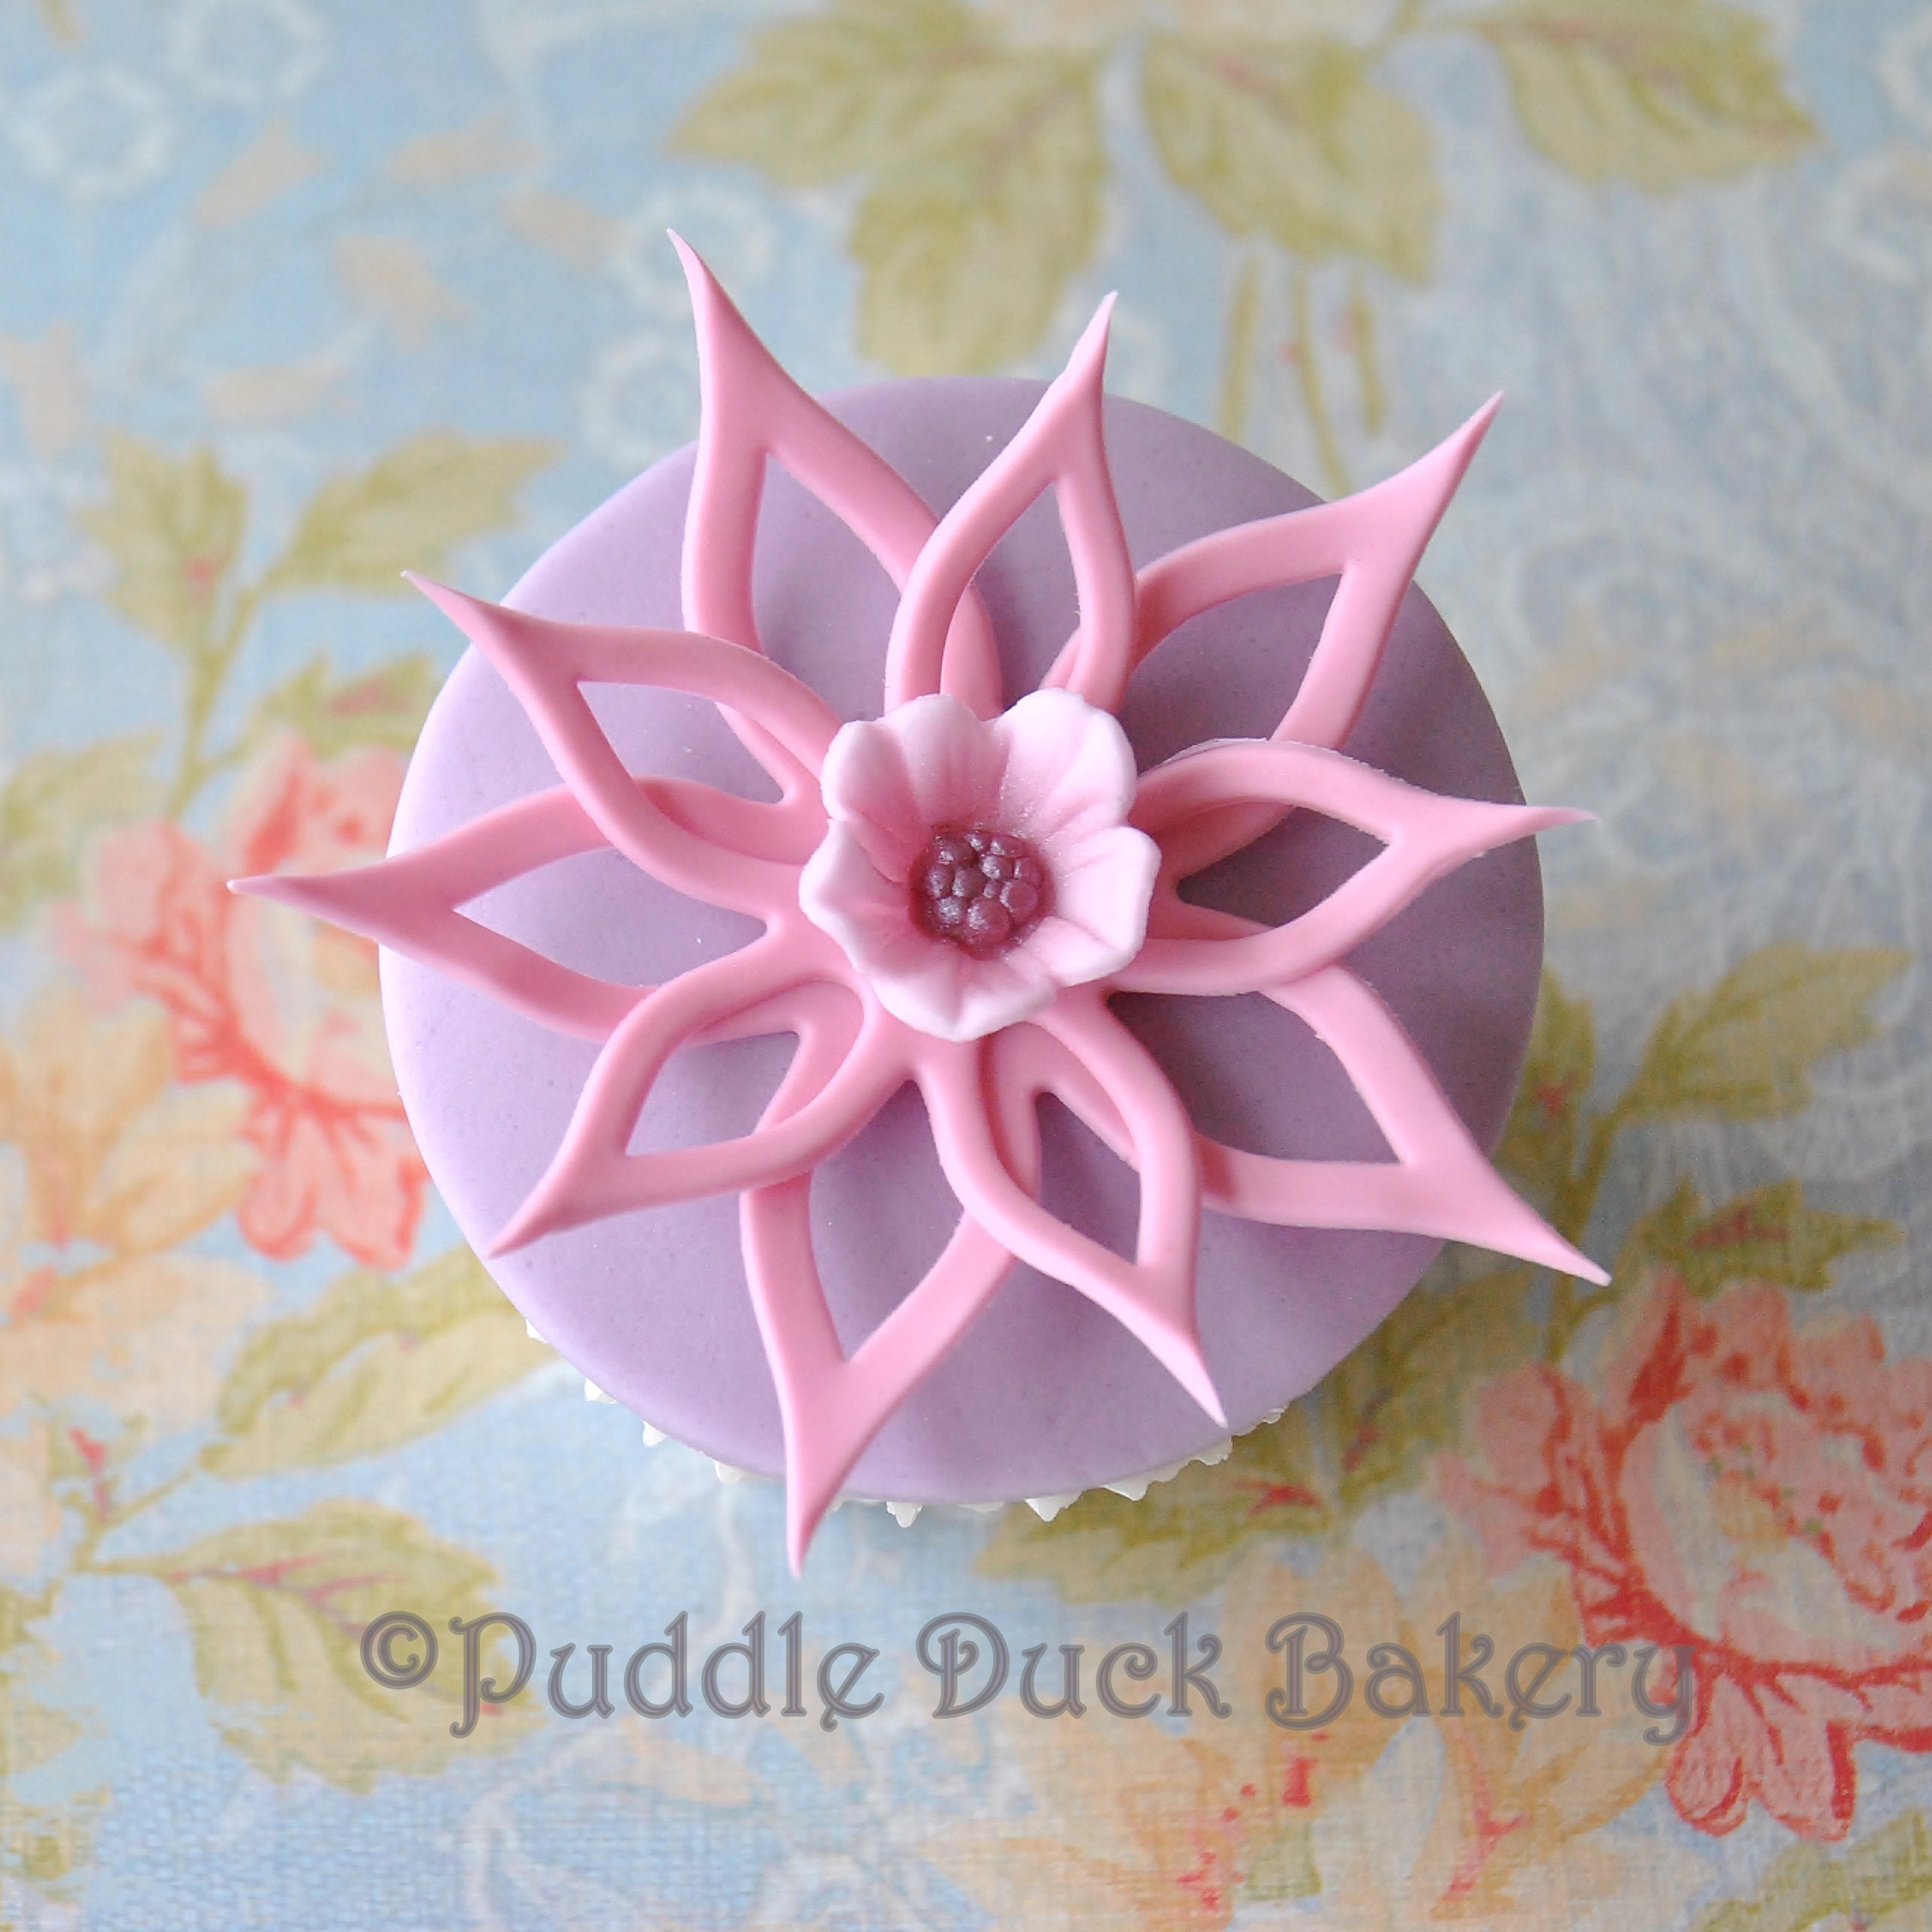 Getting creative with a flower on a cupcake